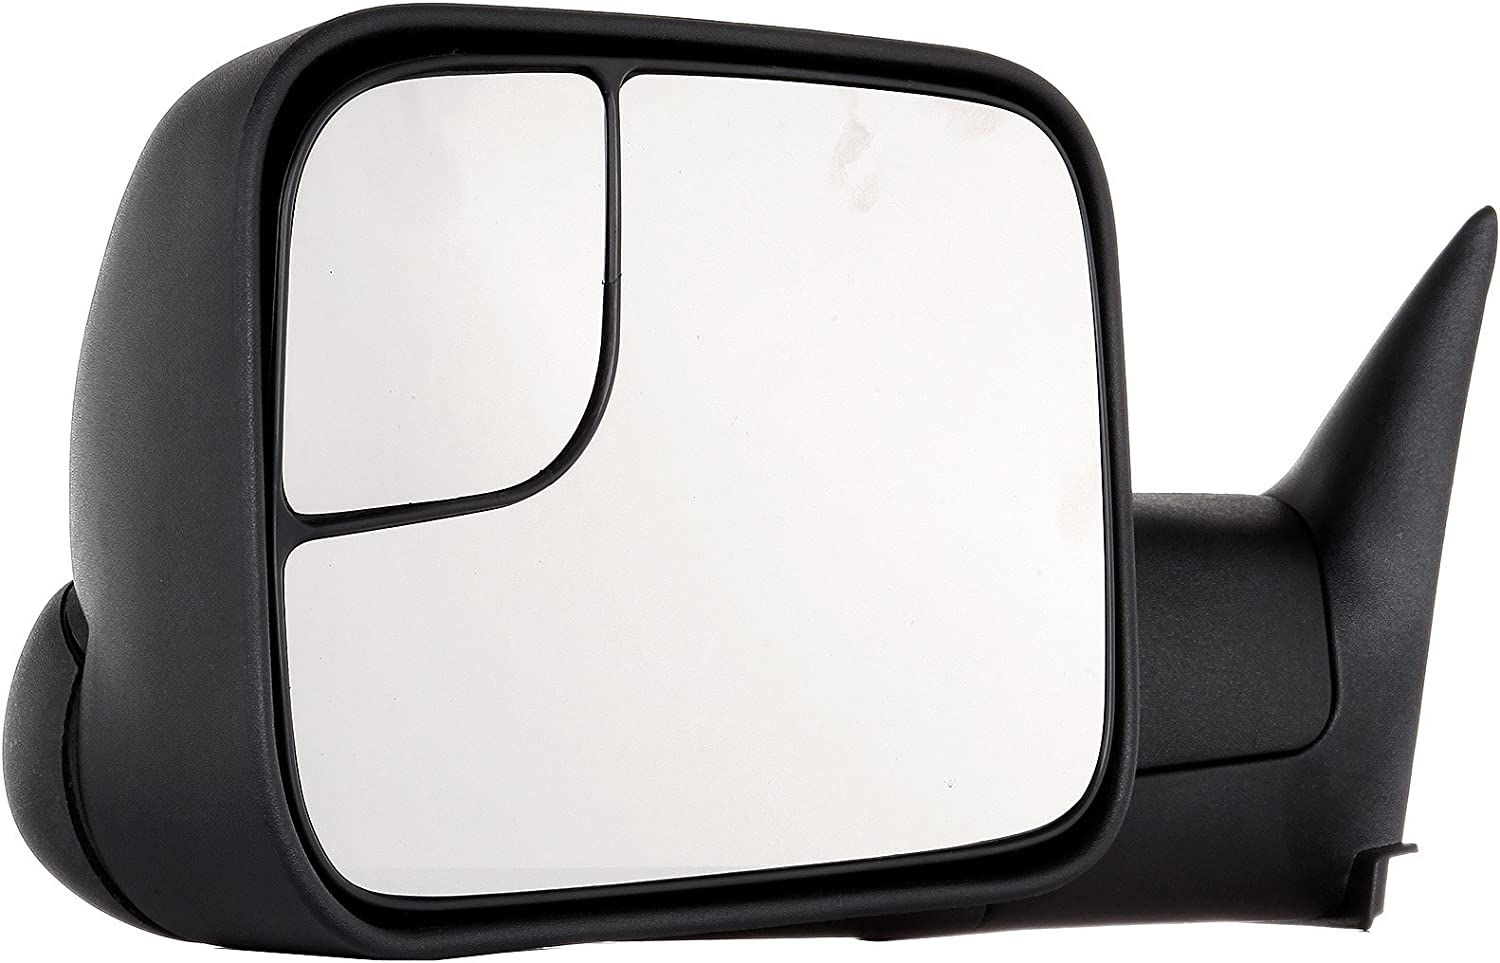 ANPART Towing Mirrors Fit for 1998-2001 Dodge Ram 1500 1998-2002 Dodge Ram 2500 Ram 3500 Tow Mirrors With A Pair LH and RH Side Power Regulation with Heating No Turn Signal Lamp